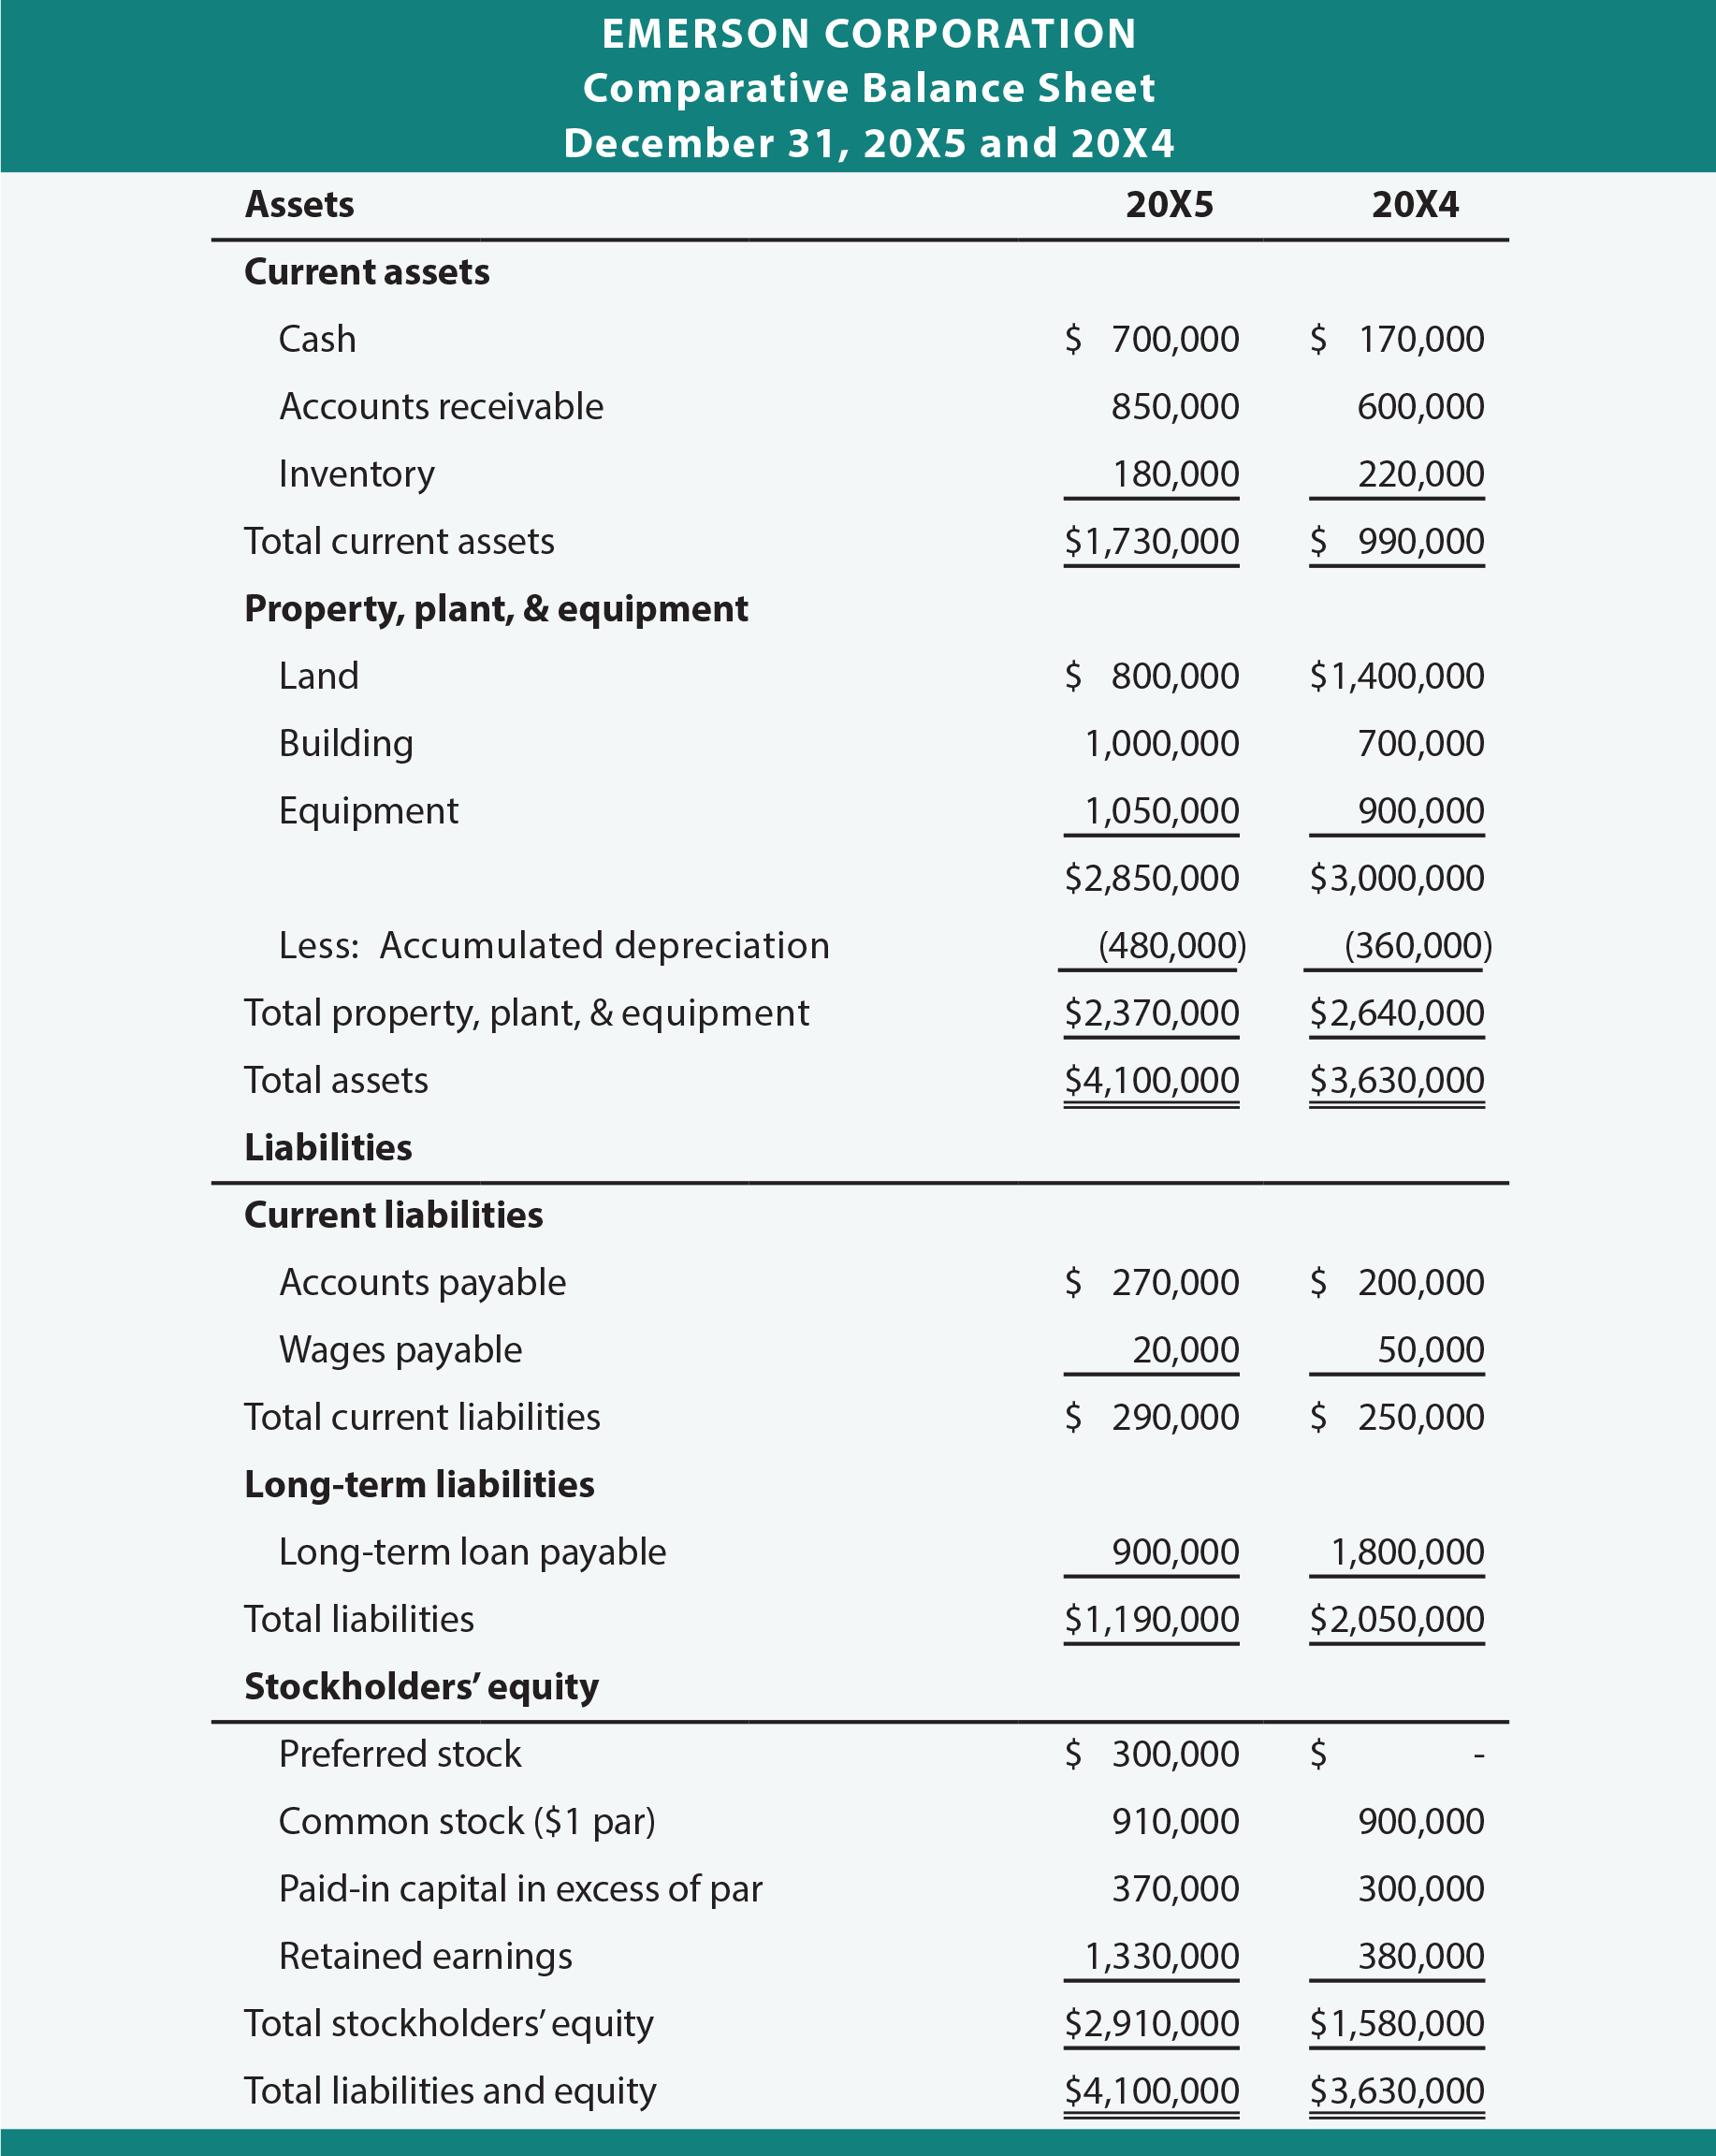 Emerson Corporation Comparative Balance Sheet